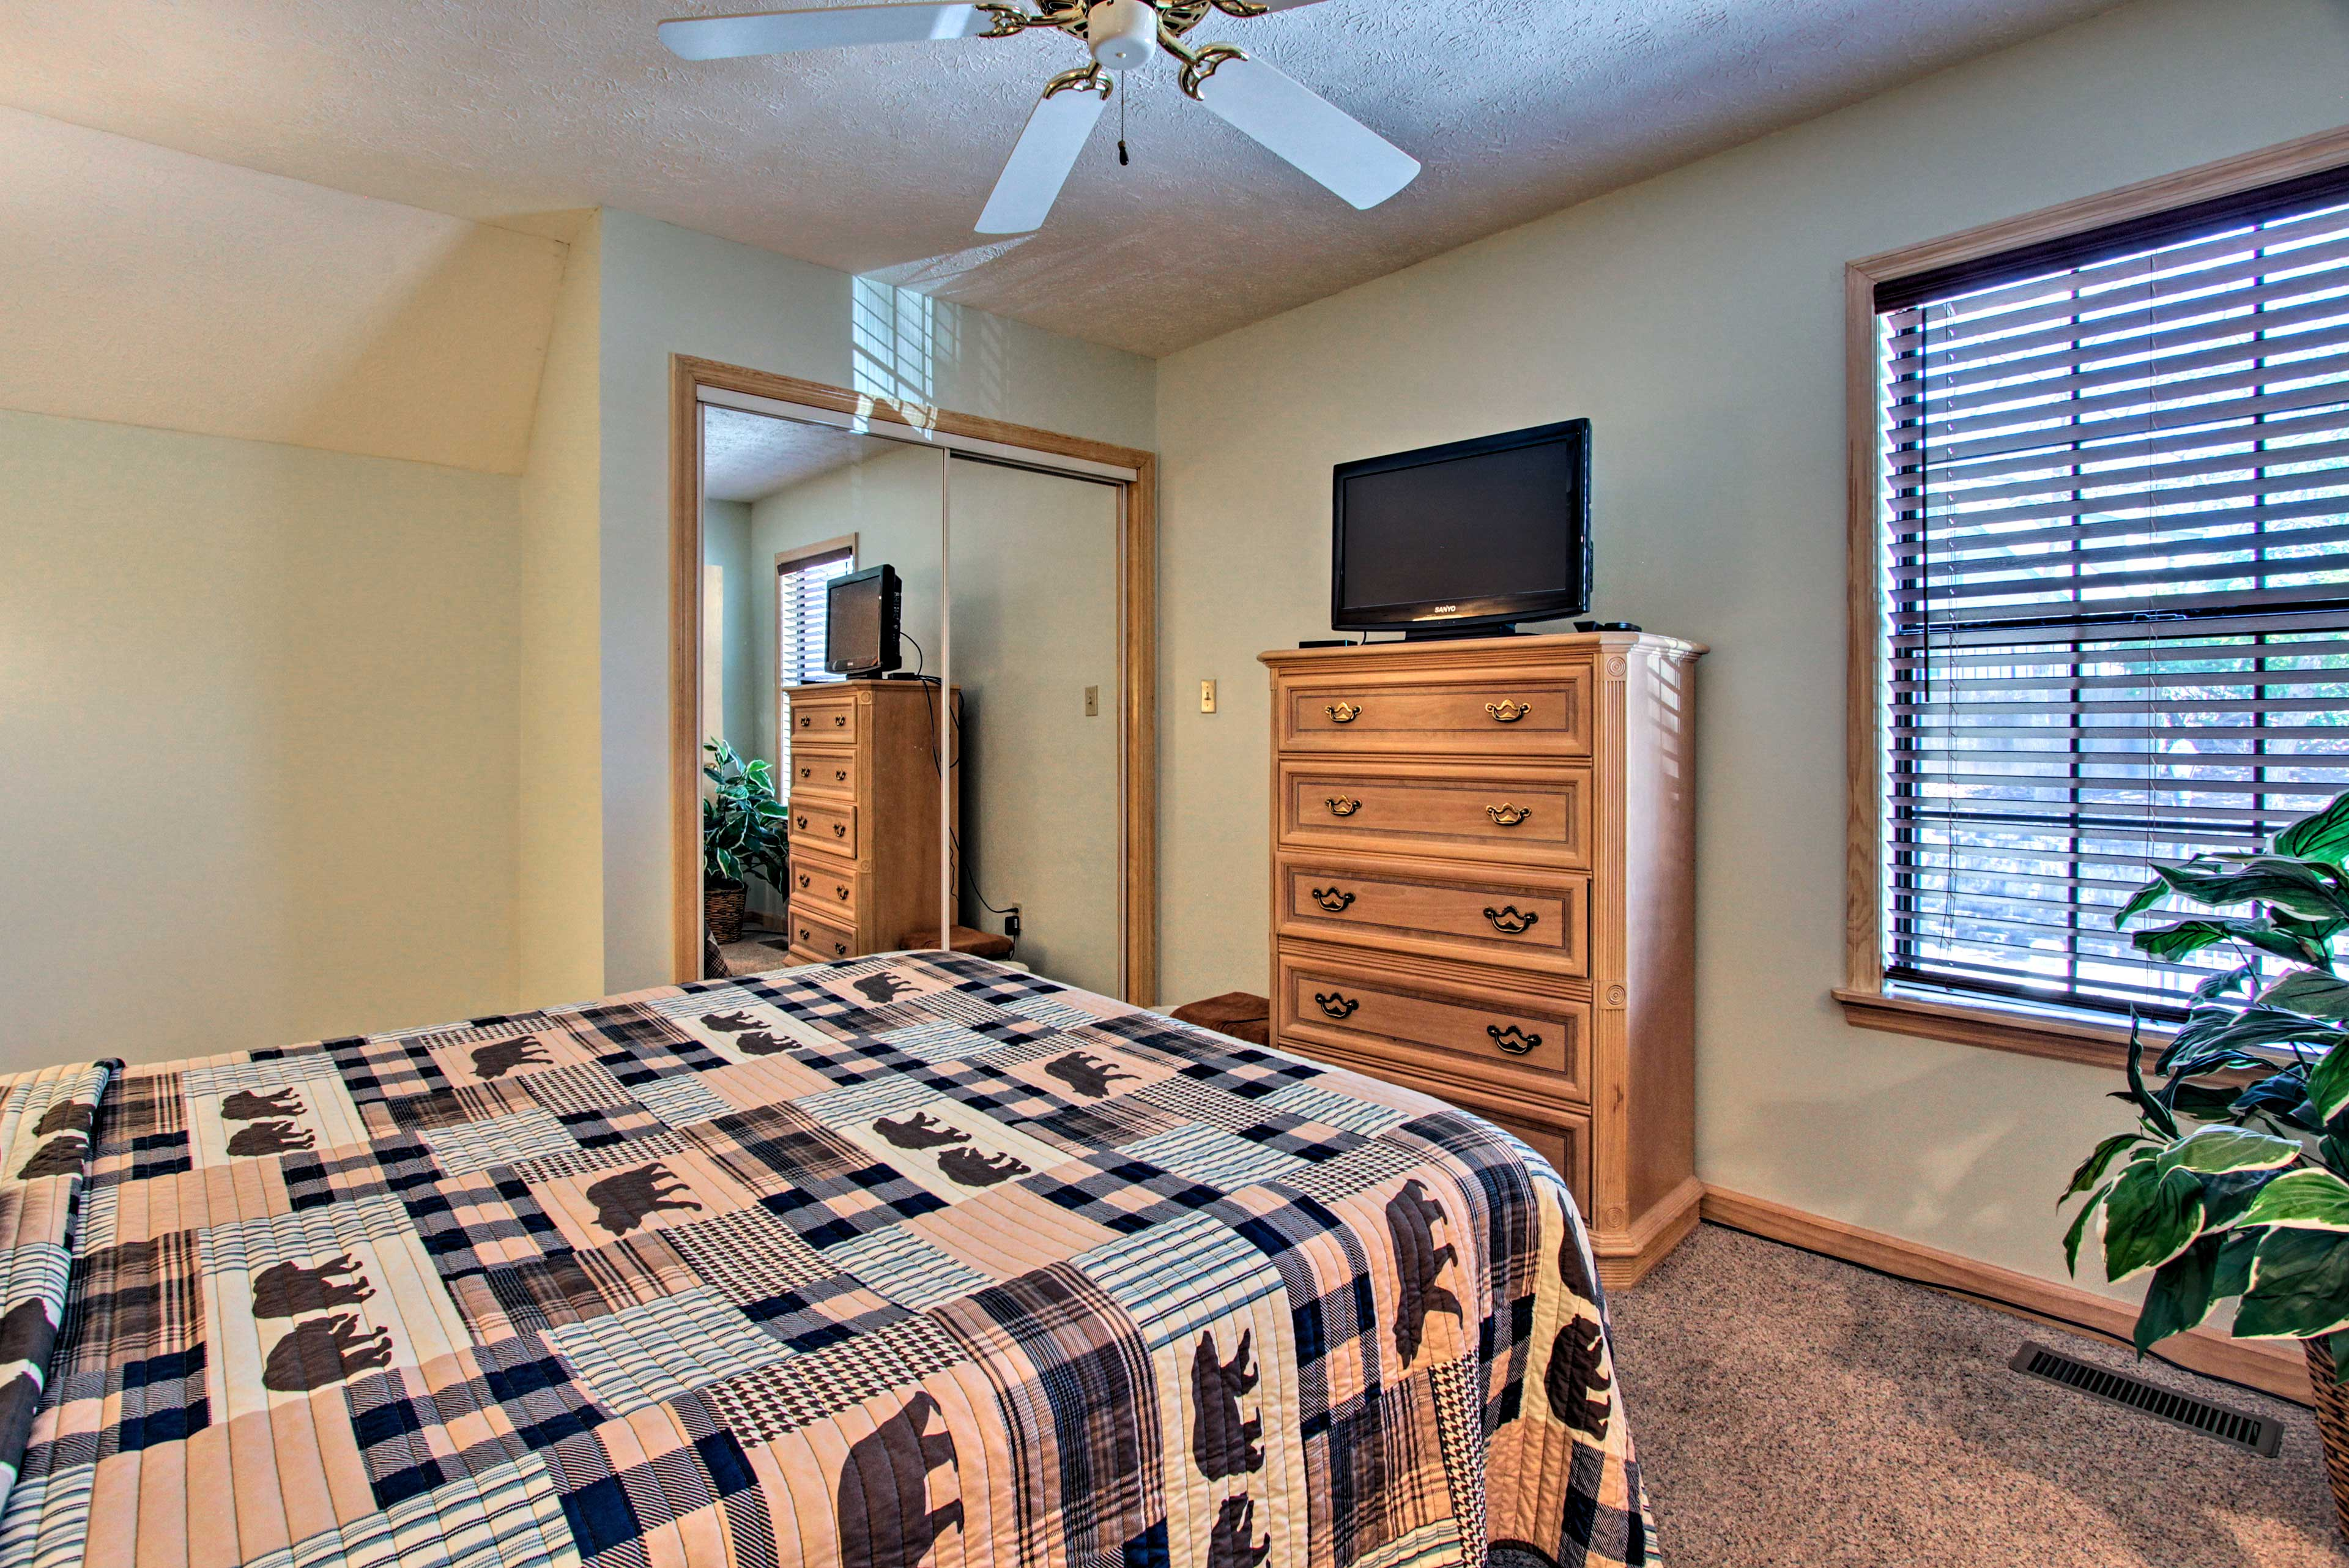 The second bedroom offers a queen bed for 2.